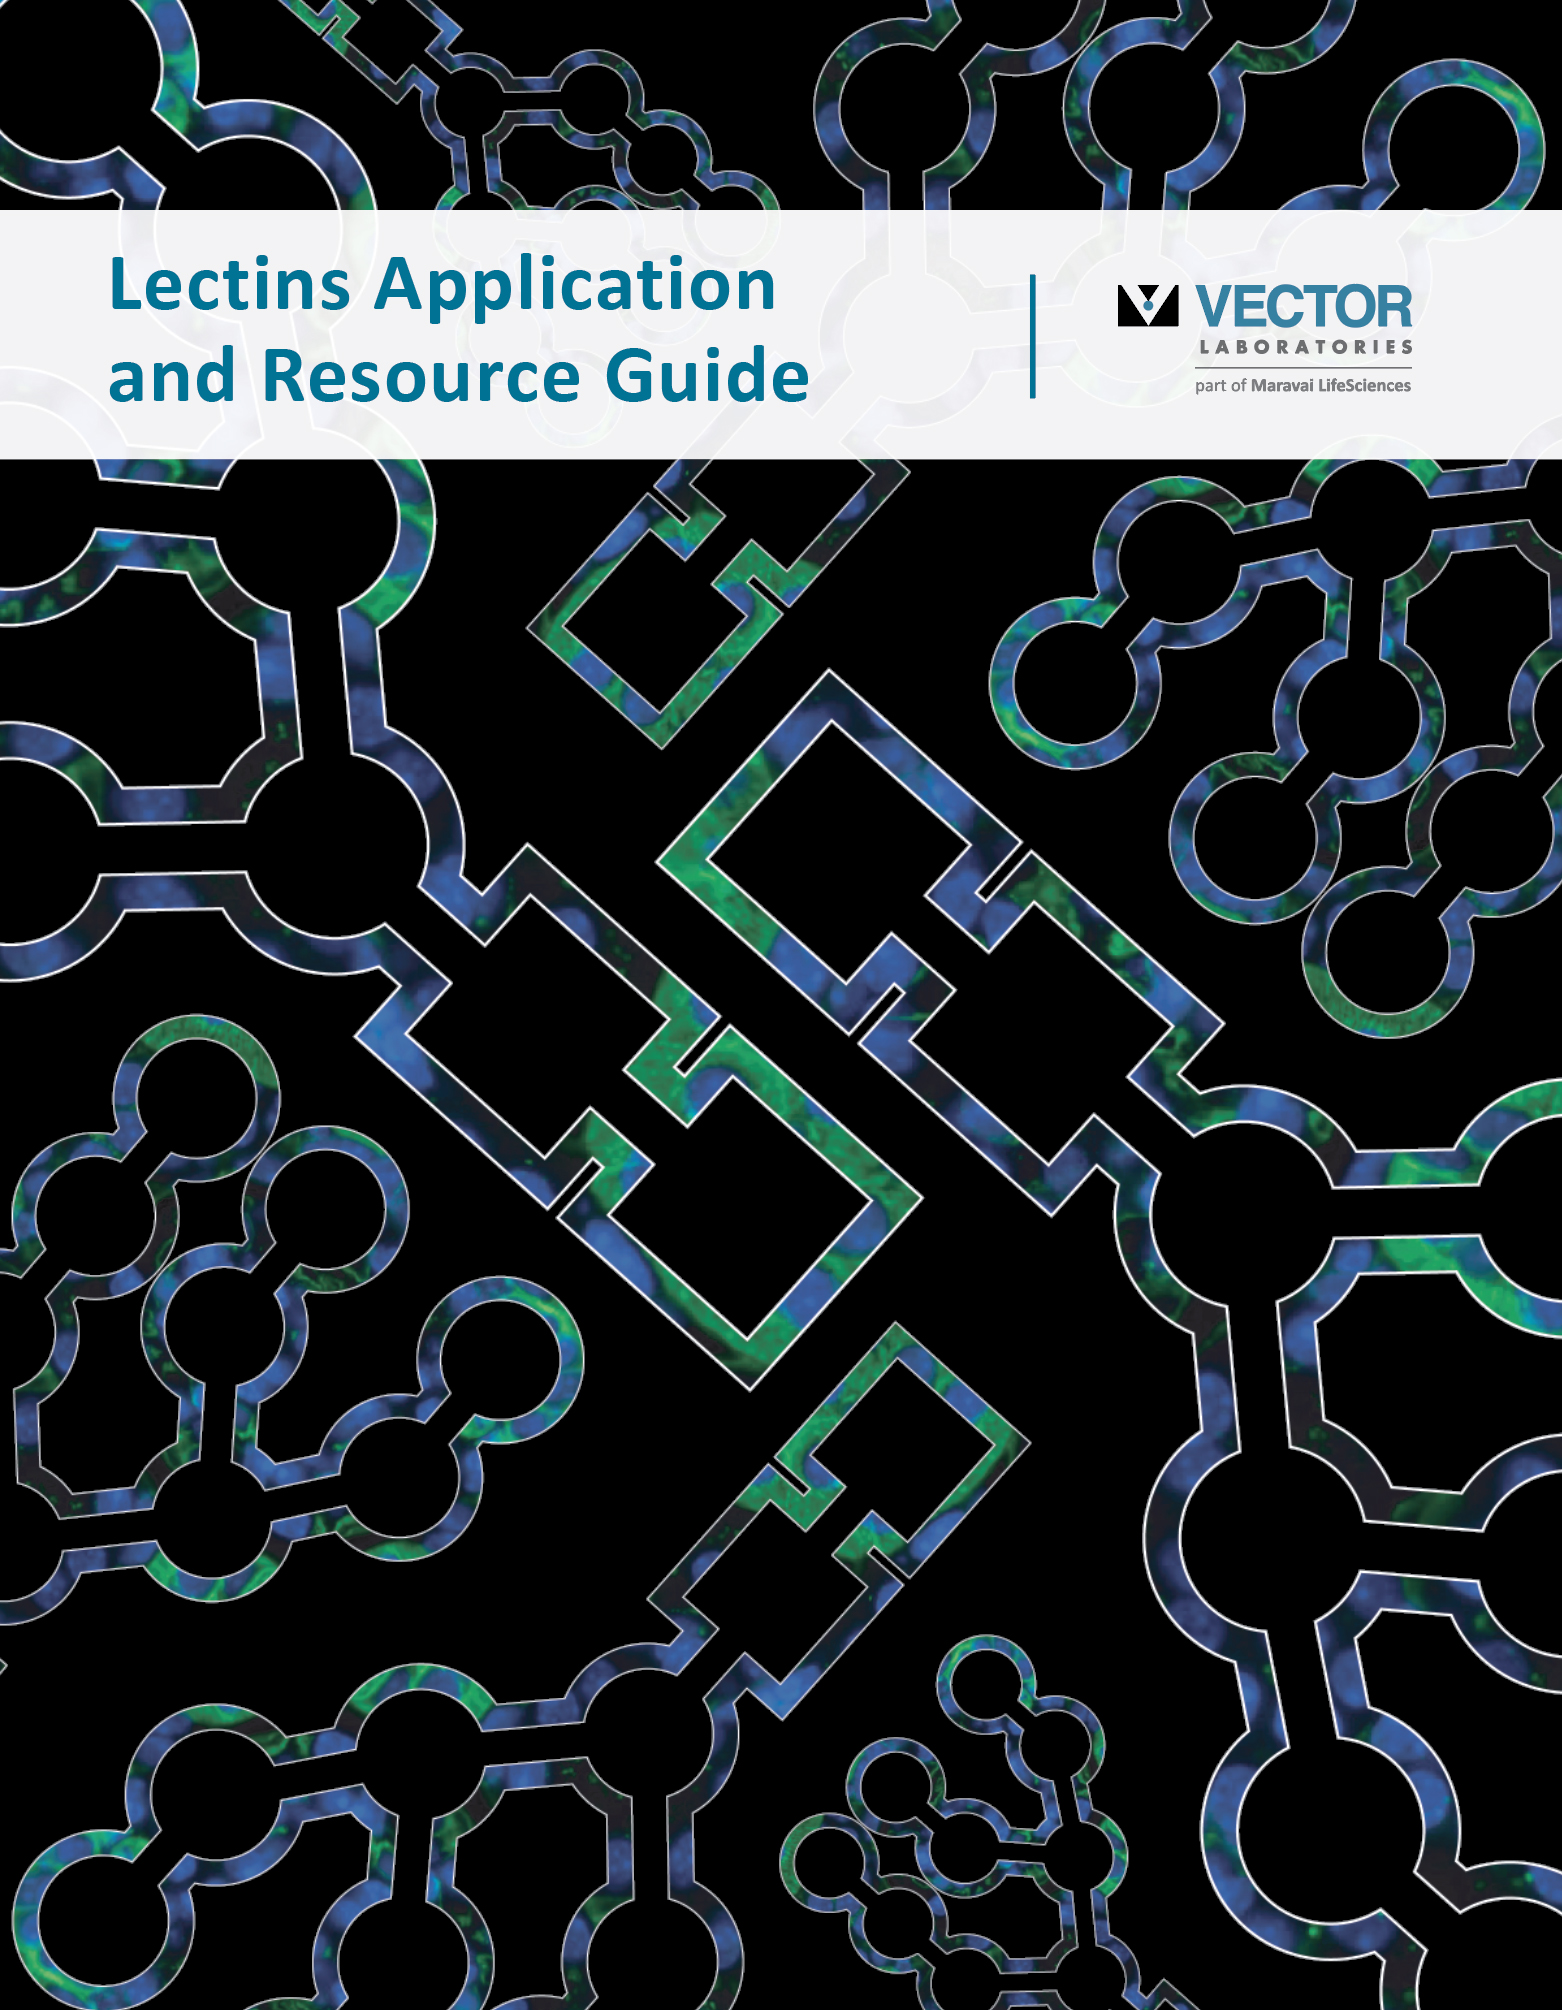 Download our Lectins Application & Resource Guide